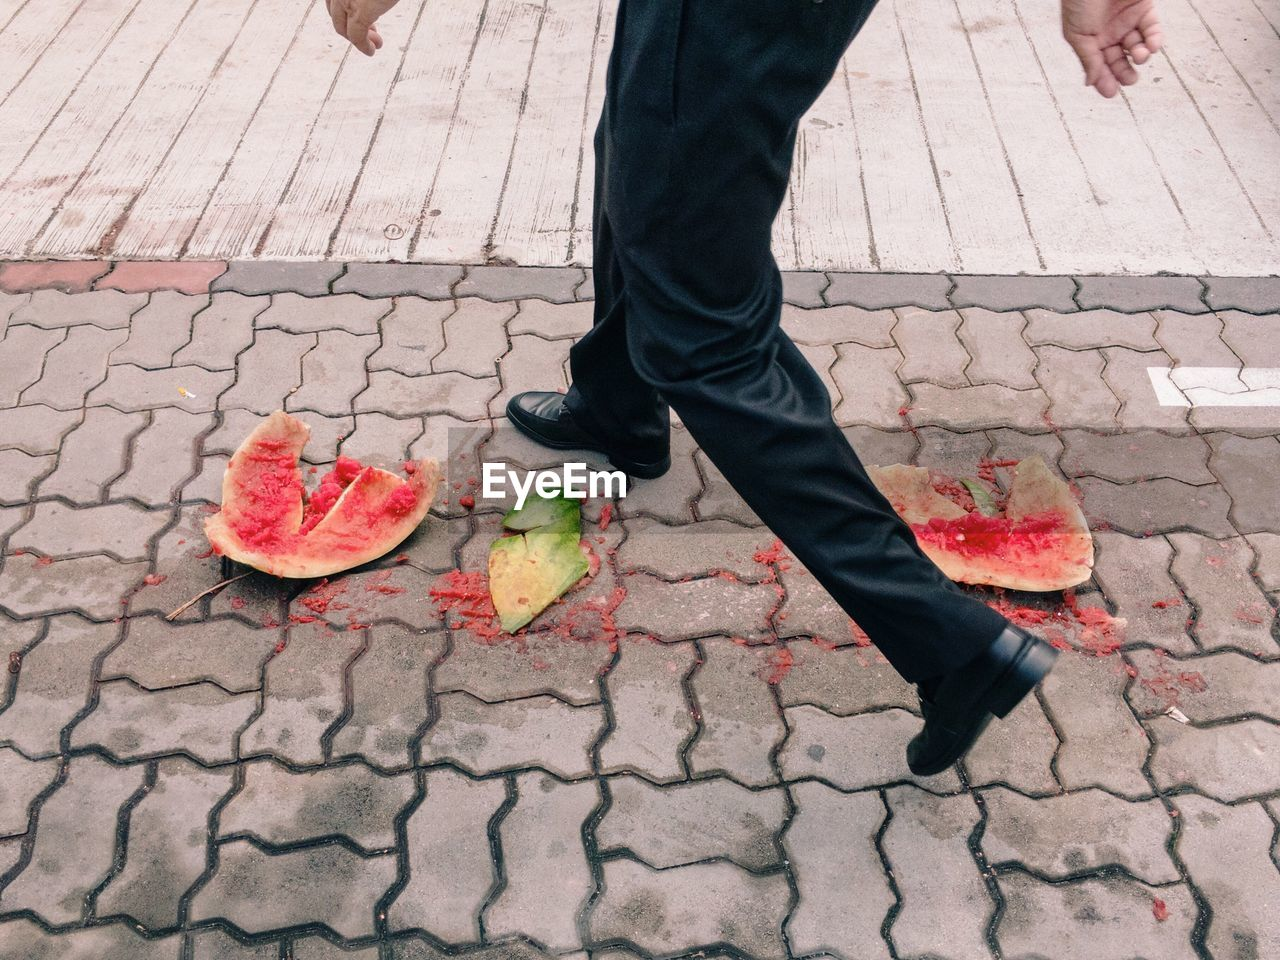 Low Section Of Man Walking Over Crushed Watermelon